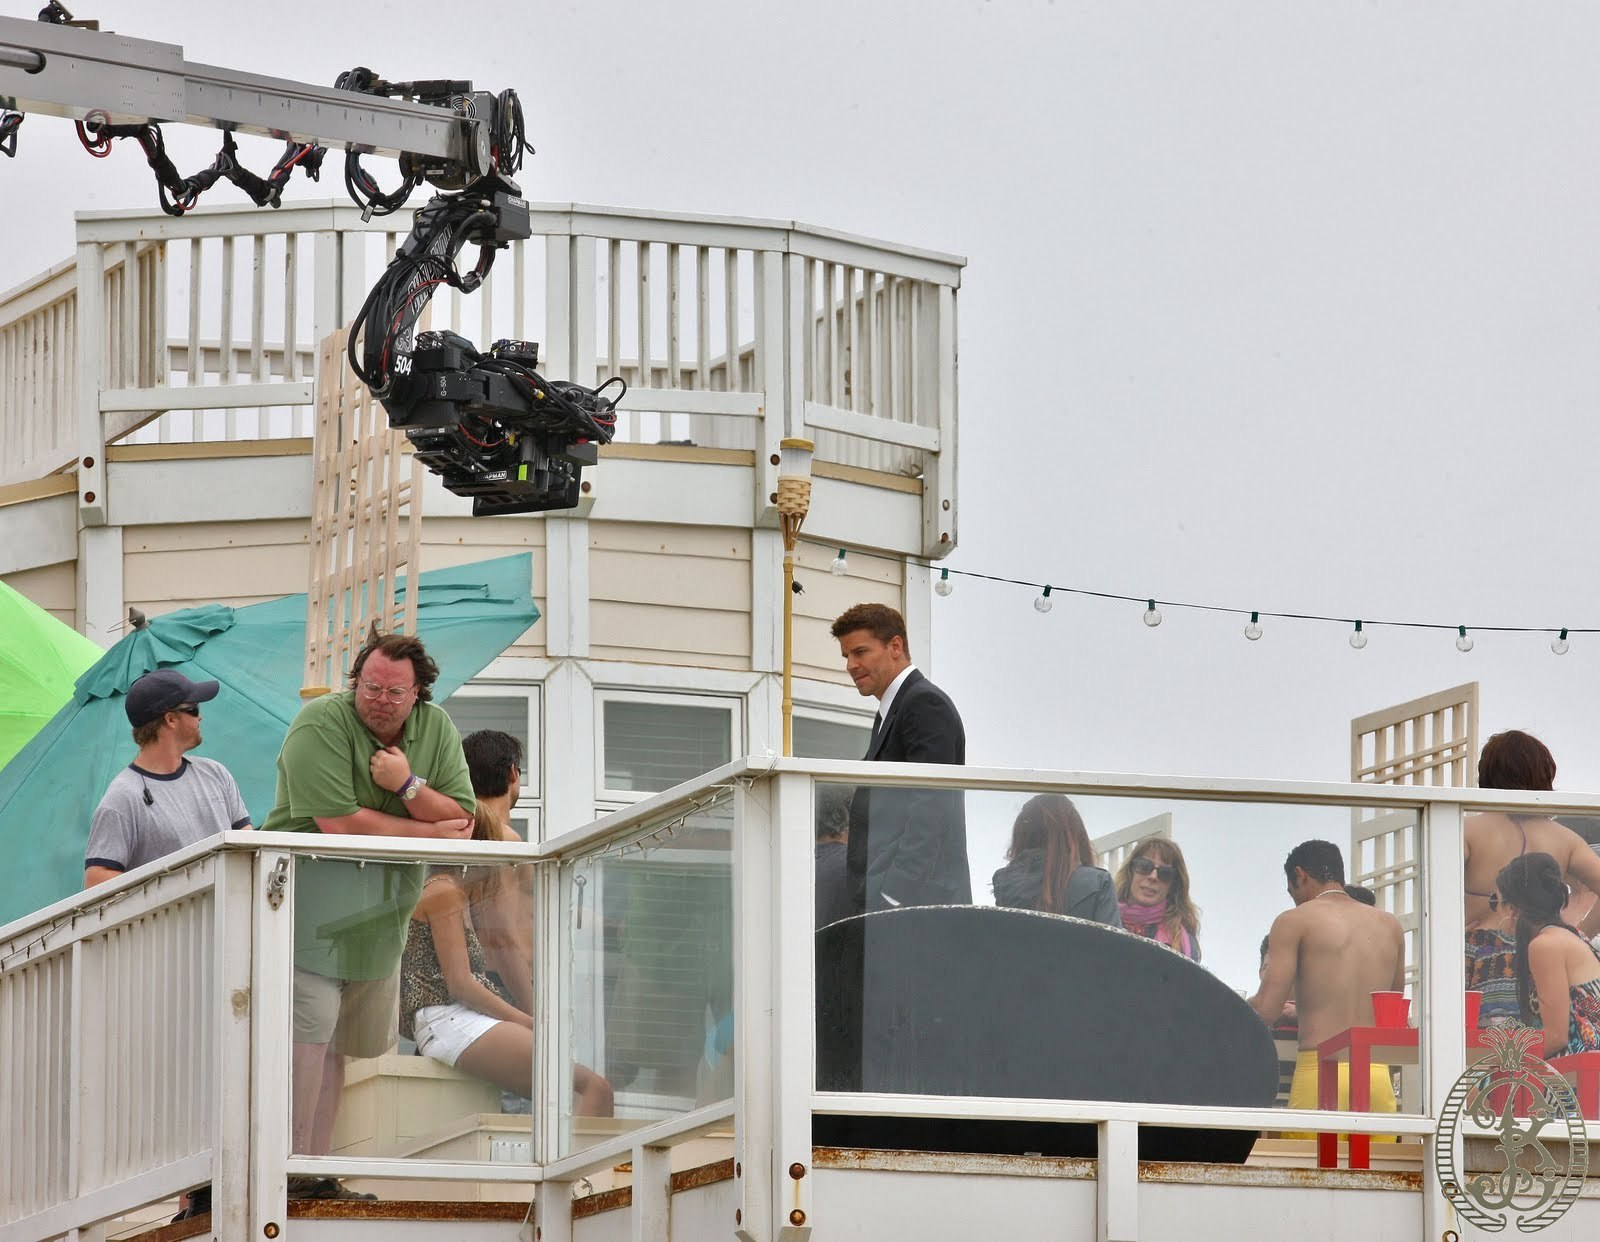 David on the Set 16 August 2010